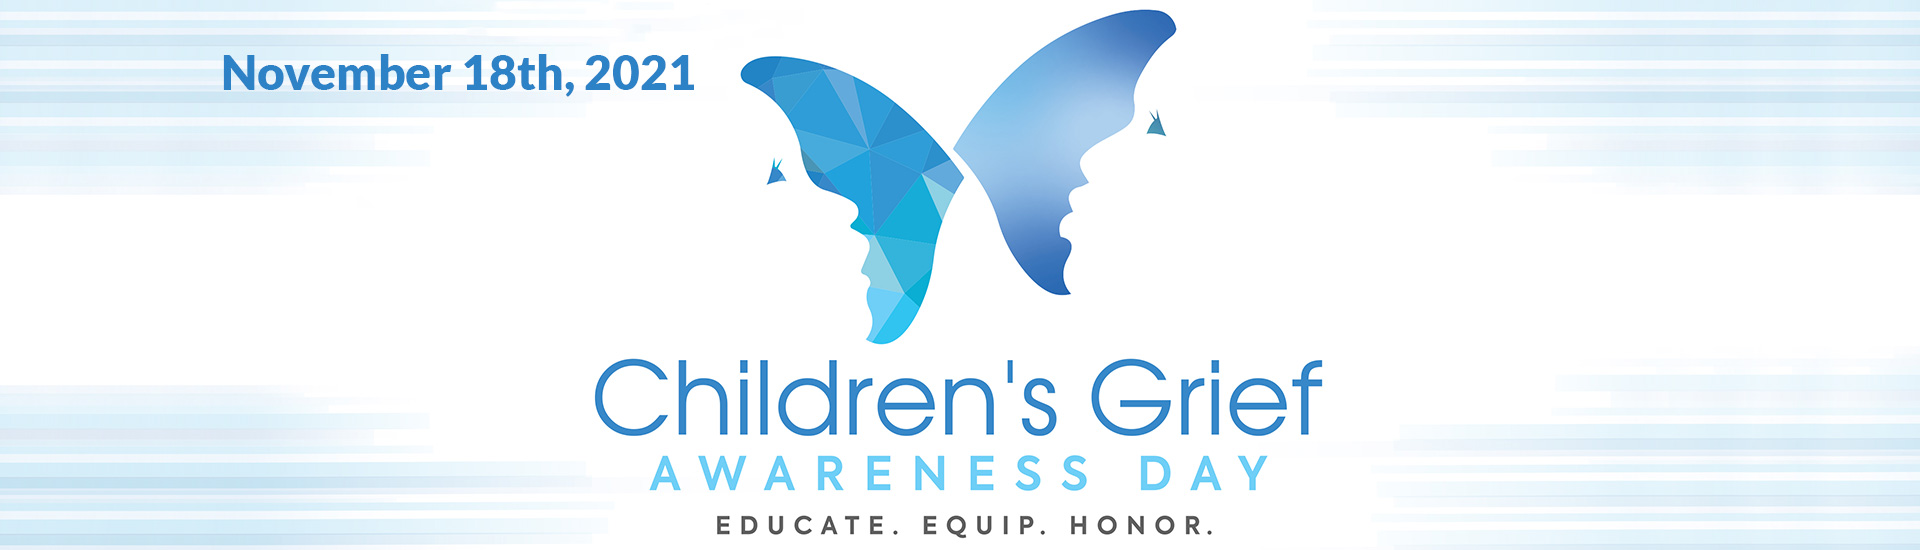 childrens-grief-awareness-day-2021